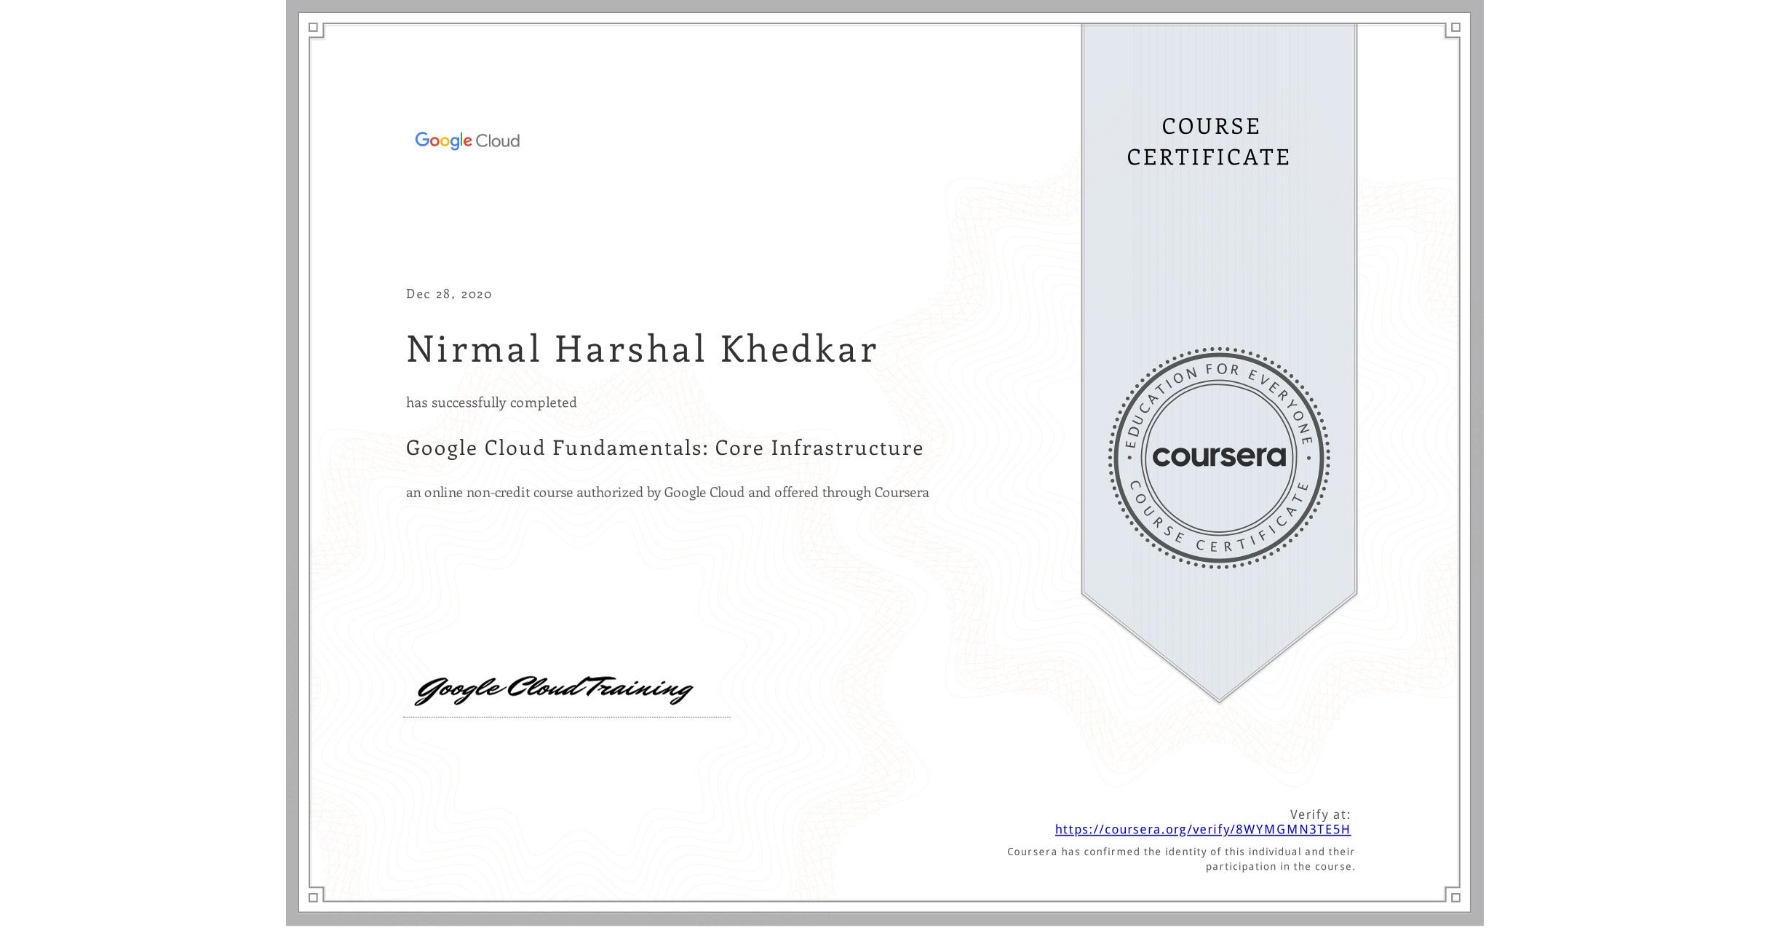 View certificate for Nirmal Harshal Khedkar, Google Cloud Platform Fundamentals: Core Infrastructure, an online non-credit course authorized by Google Cloud and offered through Coursera